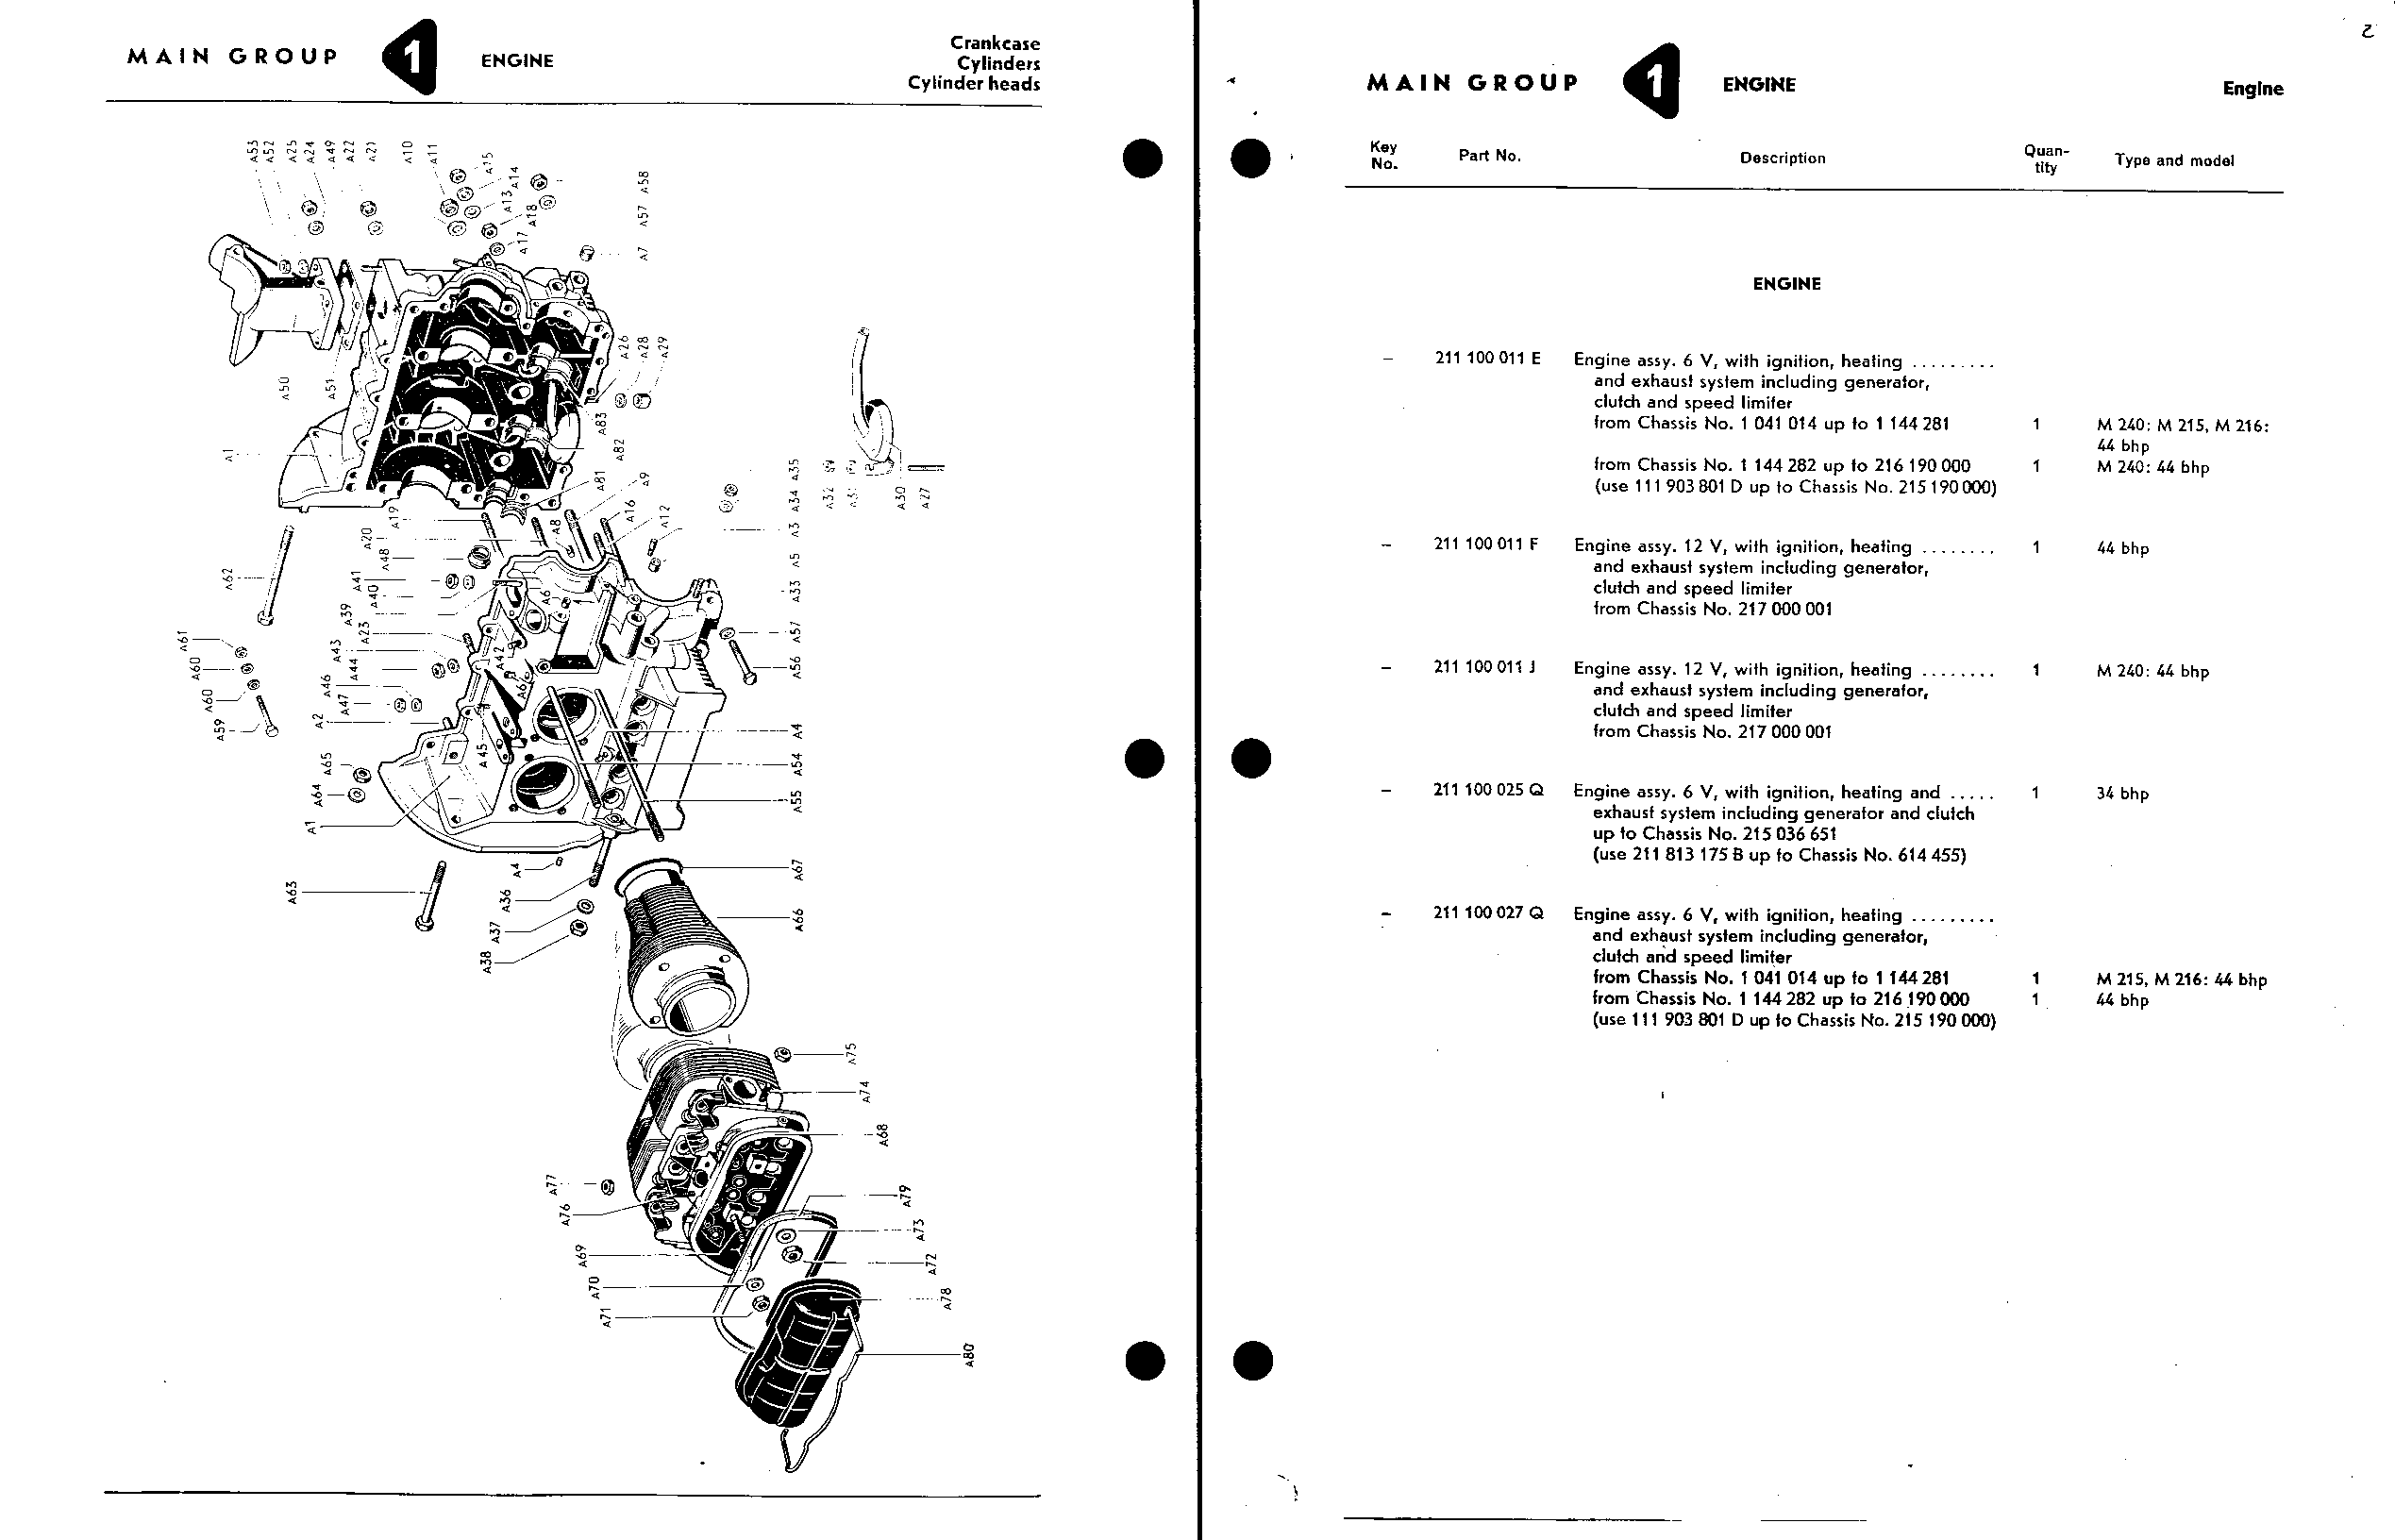 72 vw beetle wiring diagram furthermore vw beetle wiring diagram in